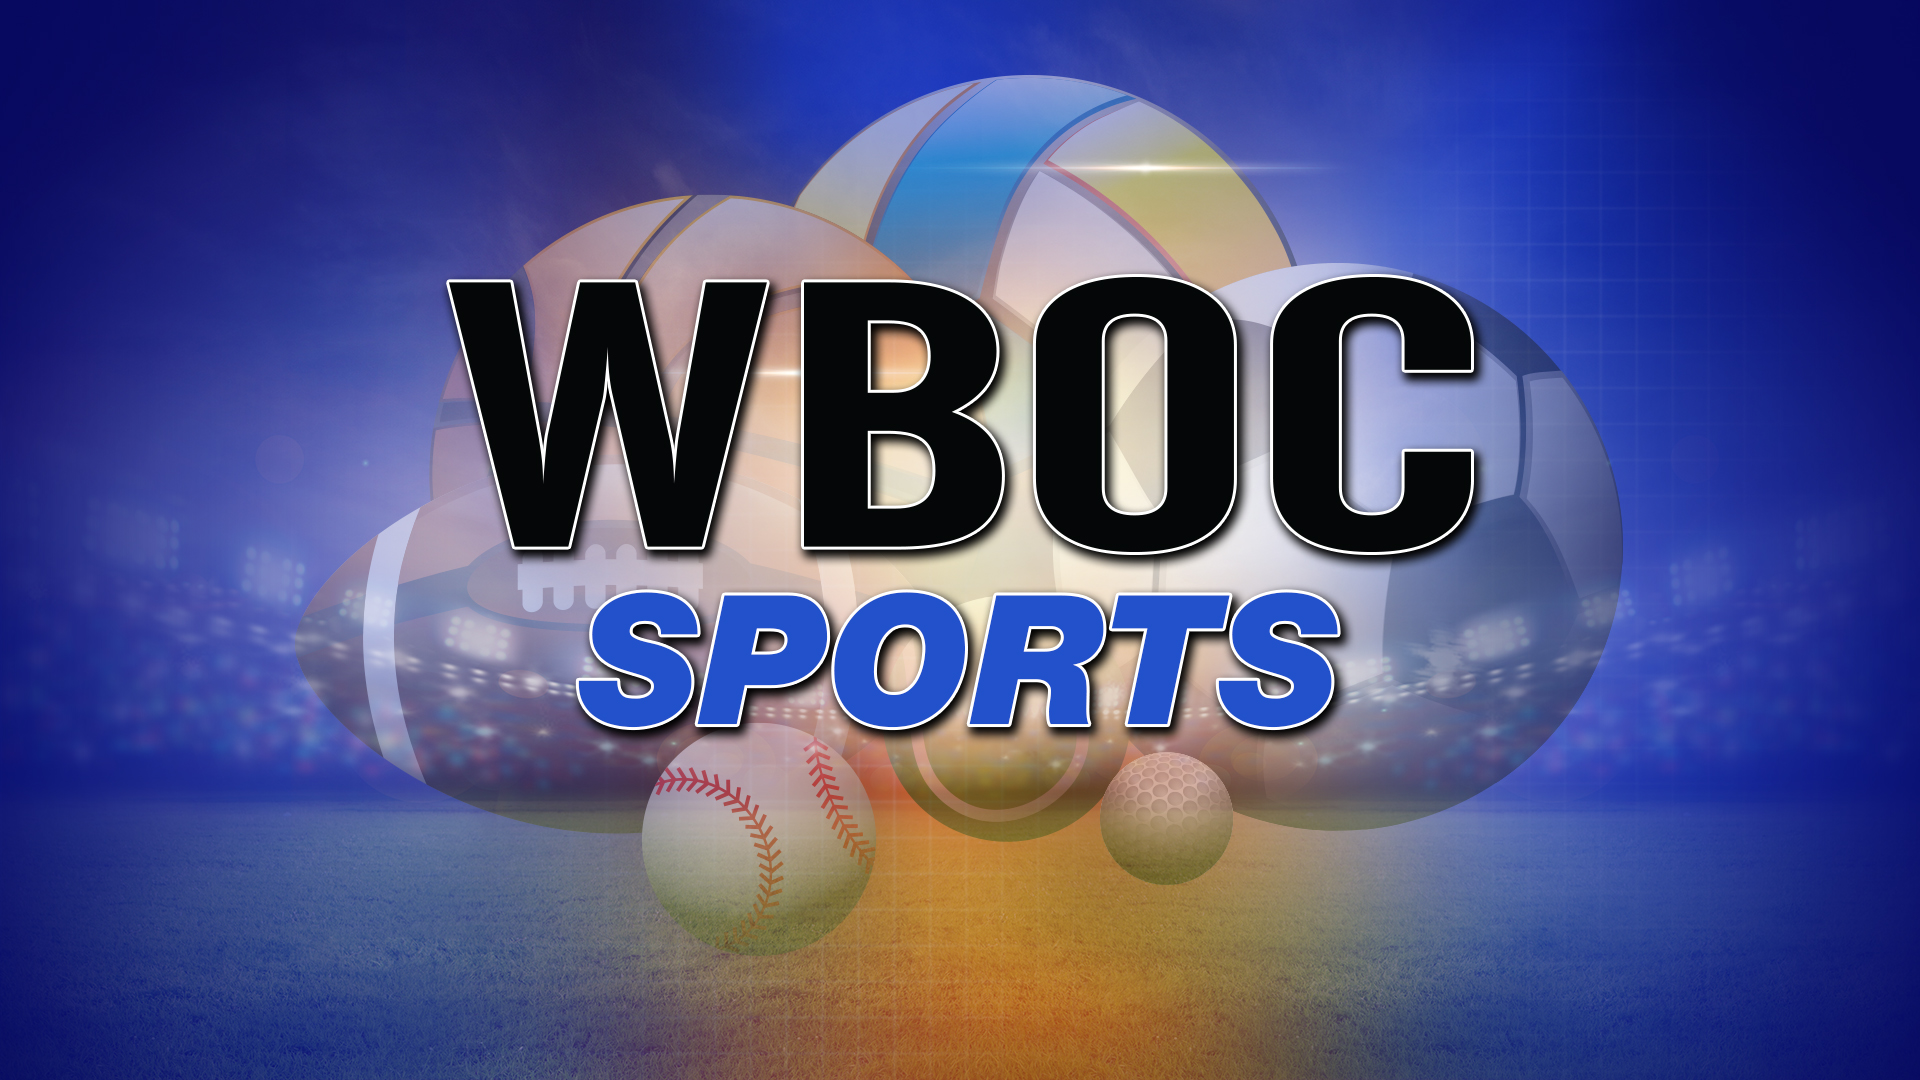 WBOC Sports Report: Tuesday, November 24, 2015